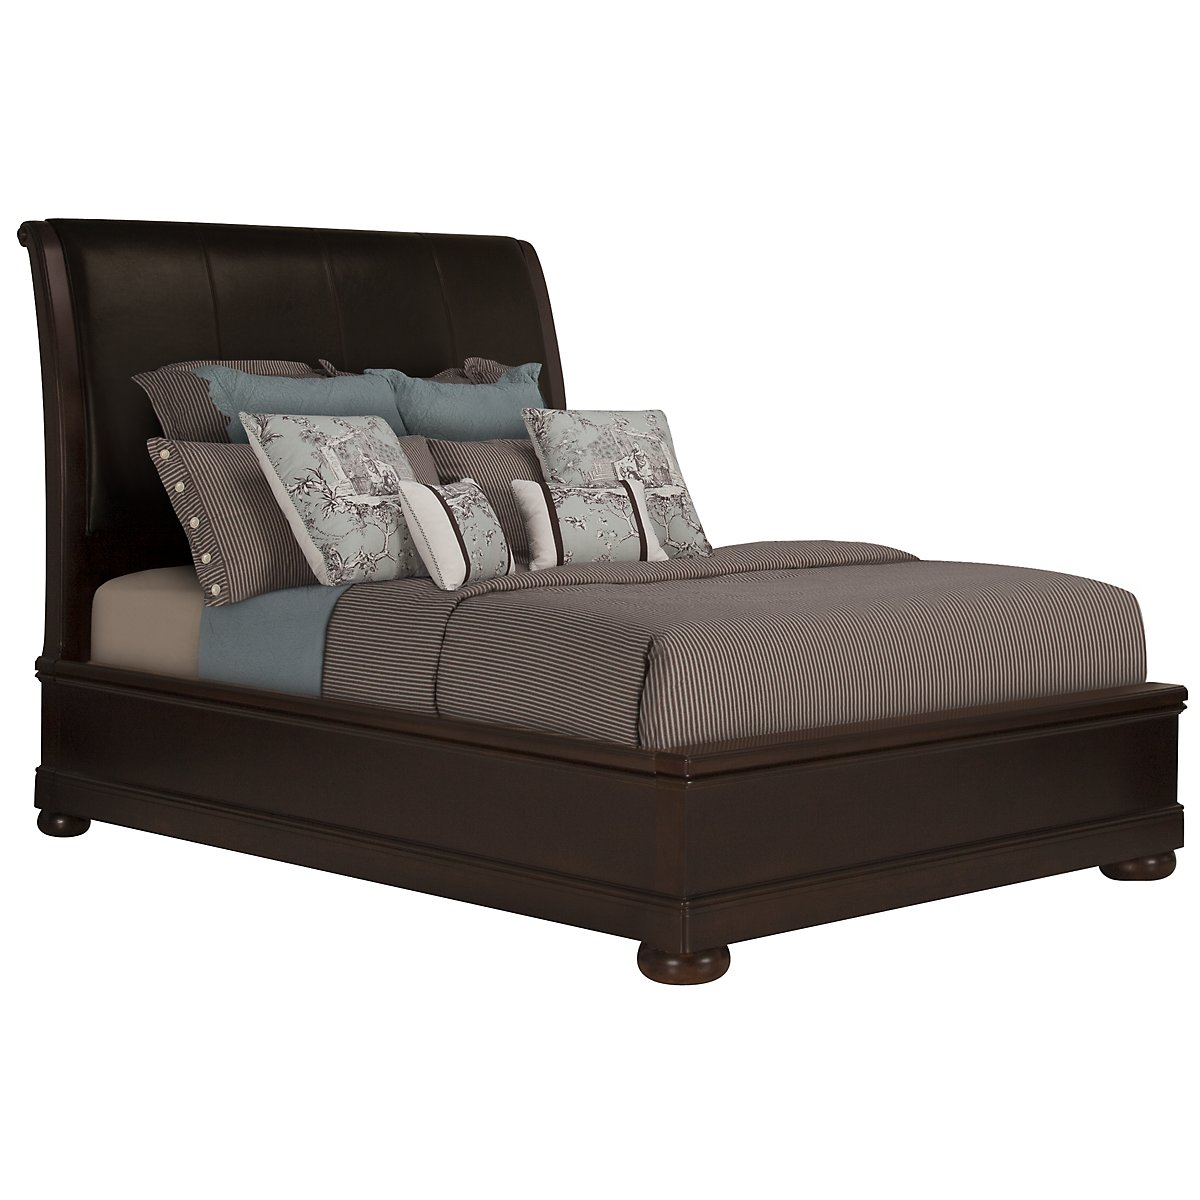 Belmont Dark Tone Leather Platform Bed